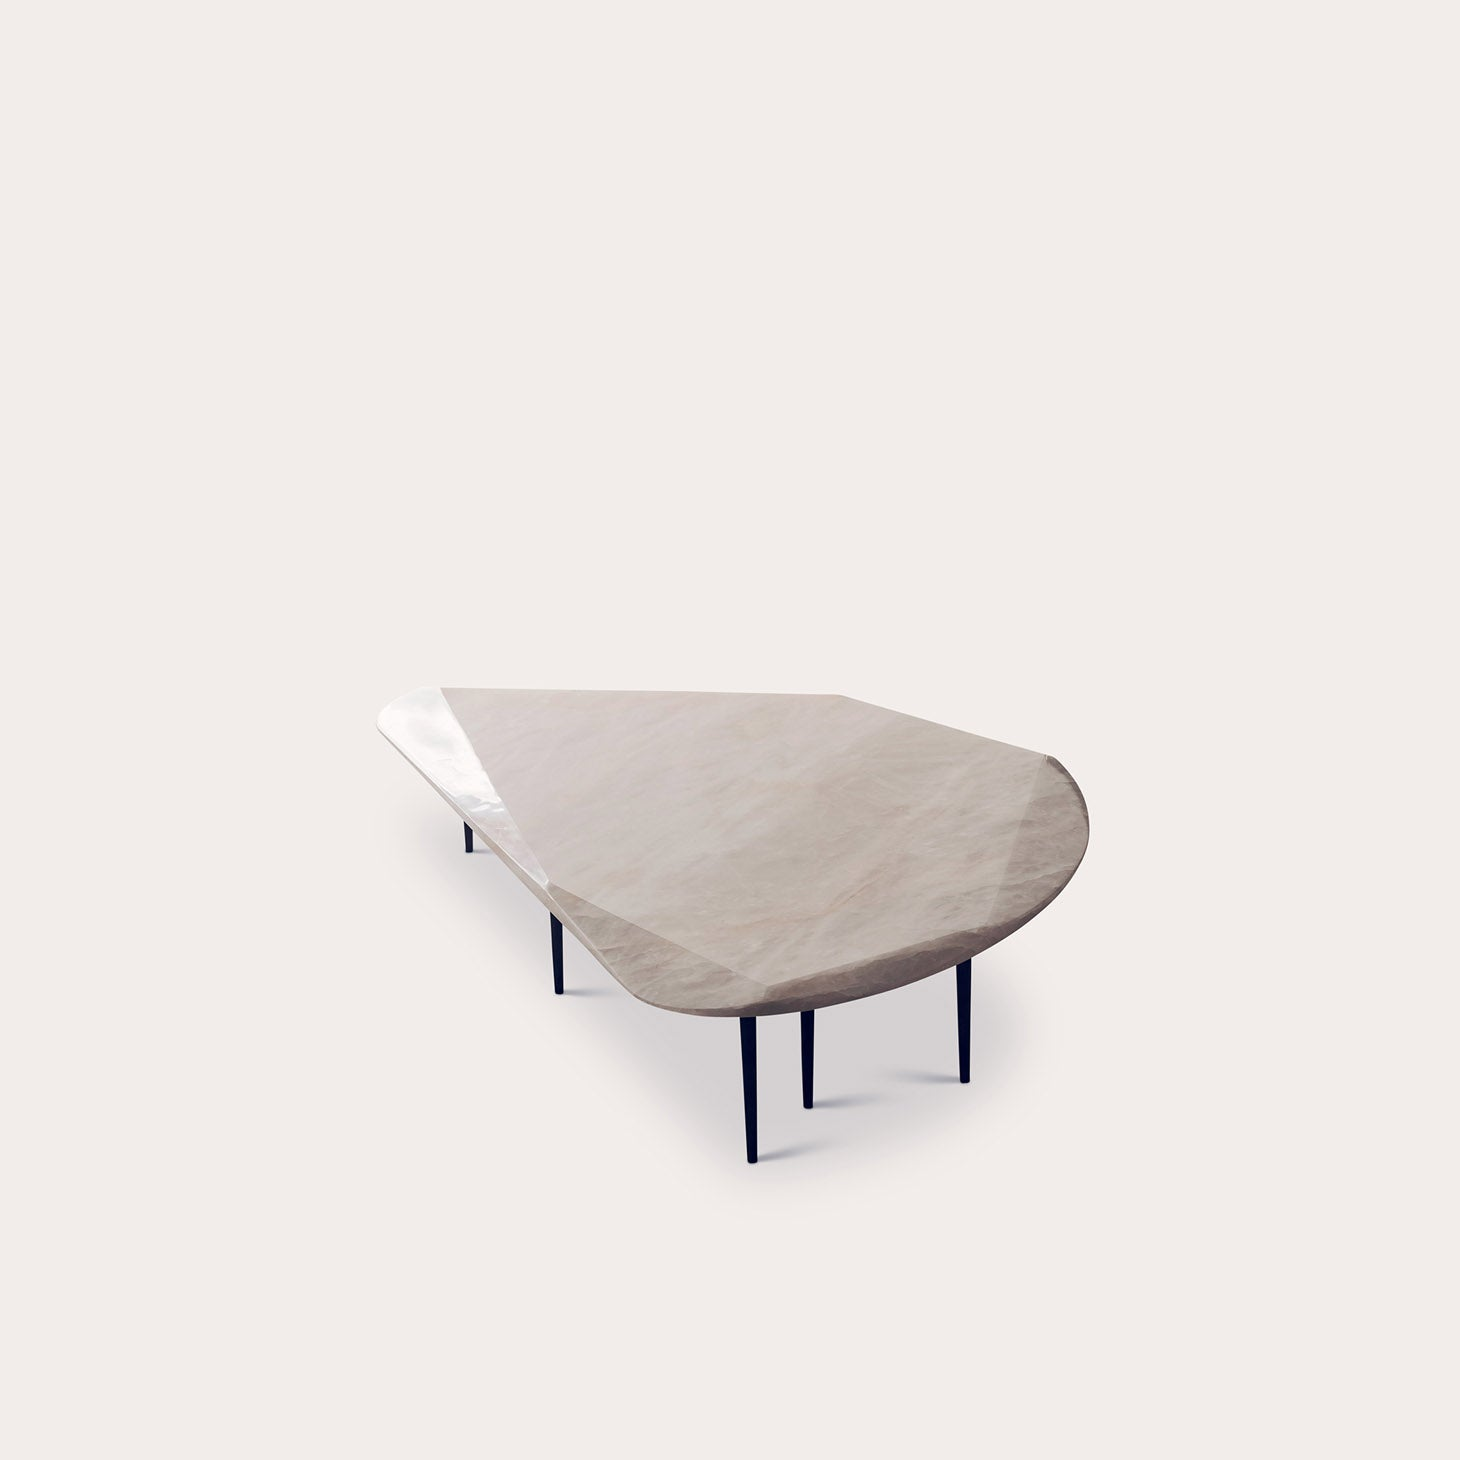 Landutim Table Tables Simone Coste Designer Furniture Sku: 992-230-10046